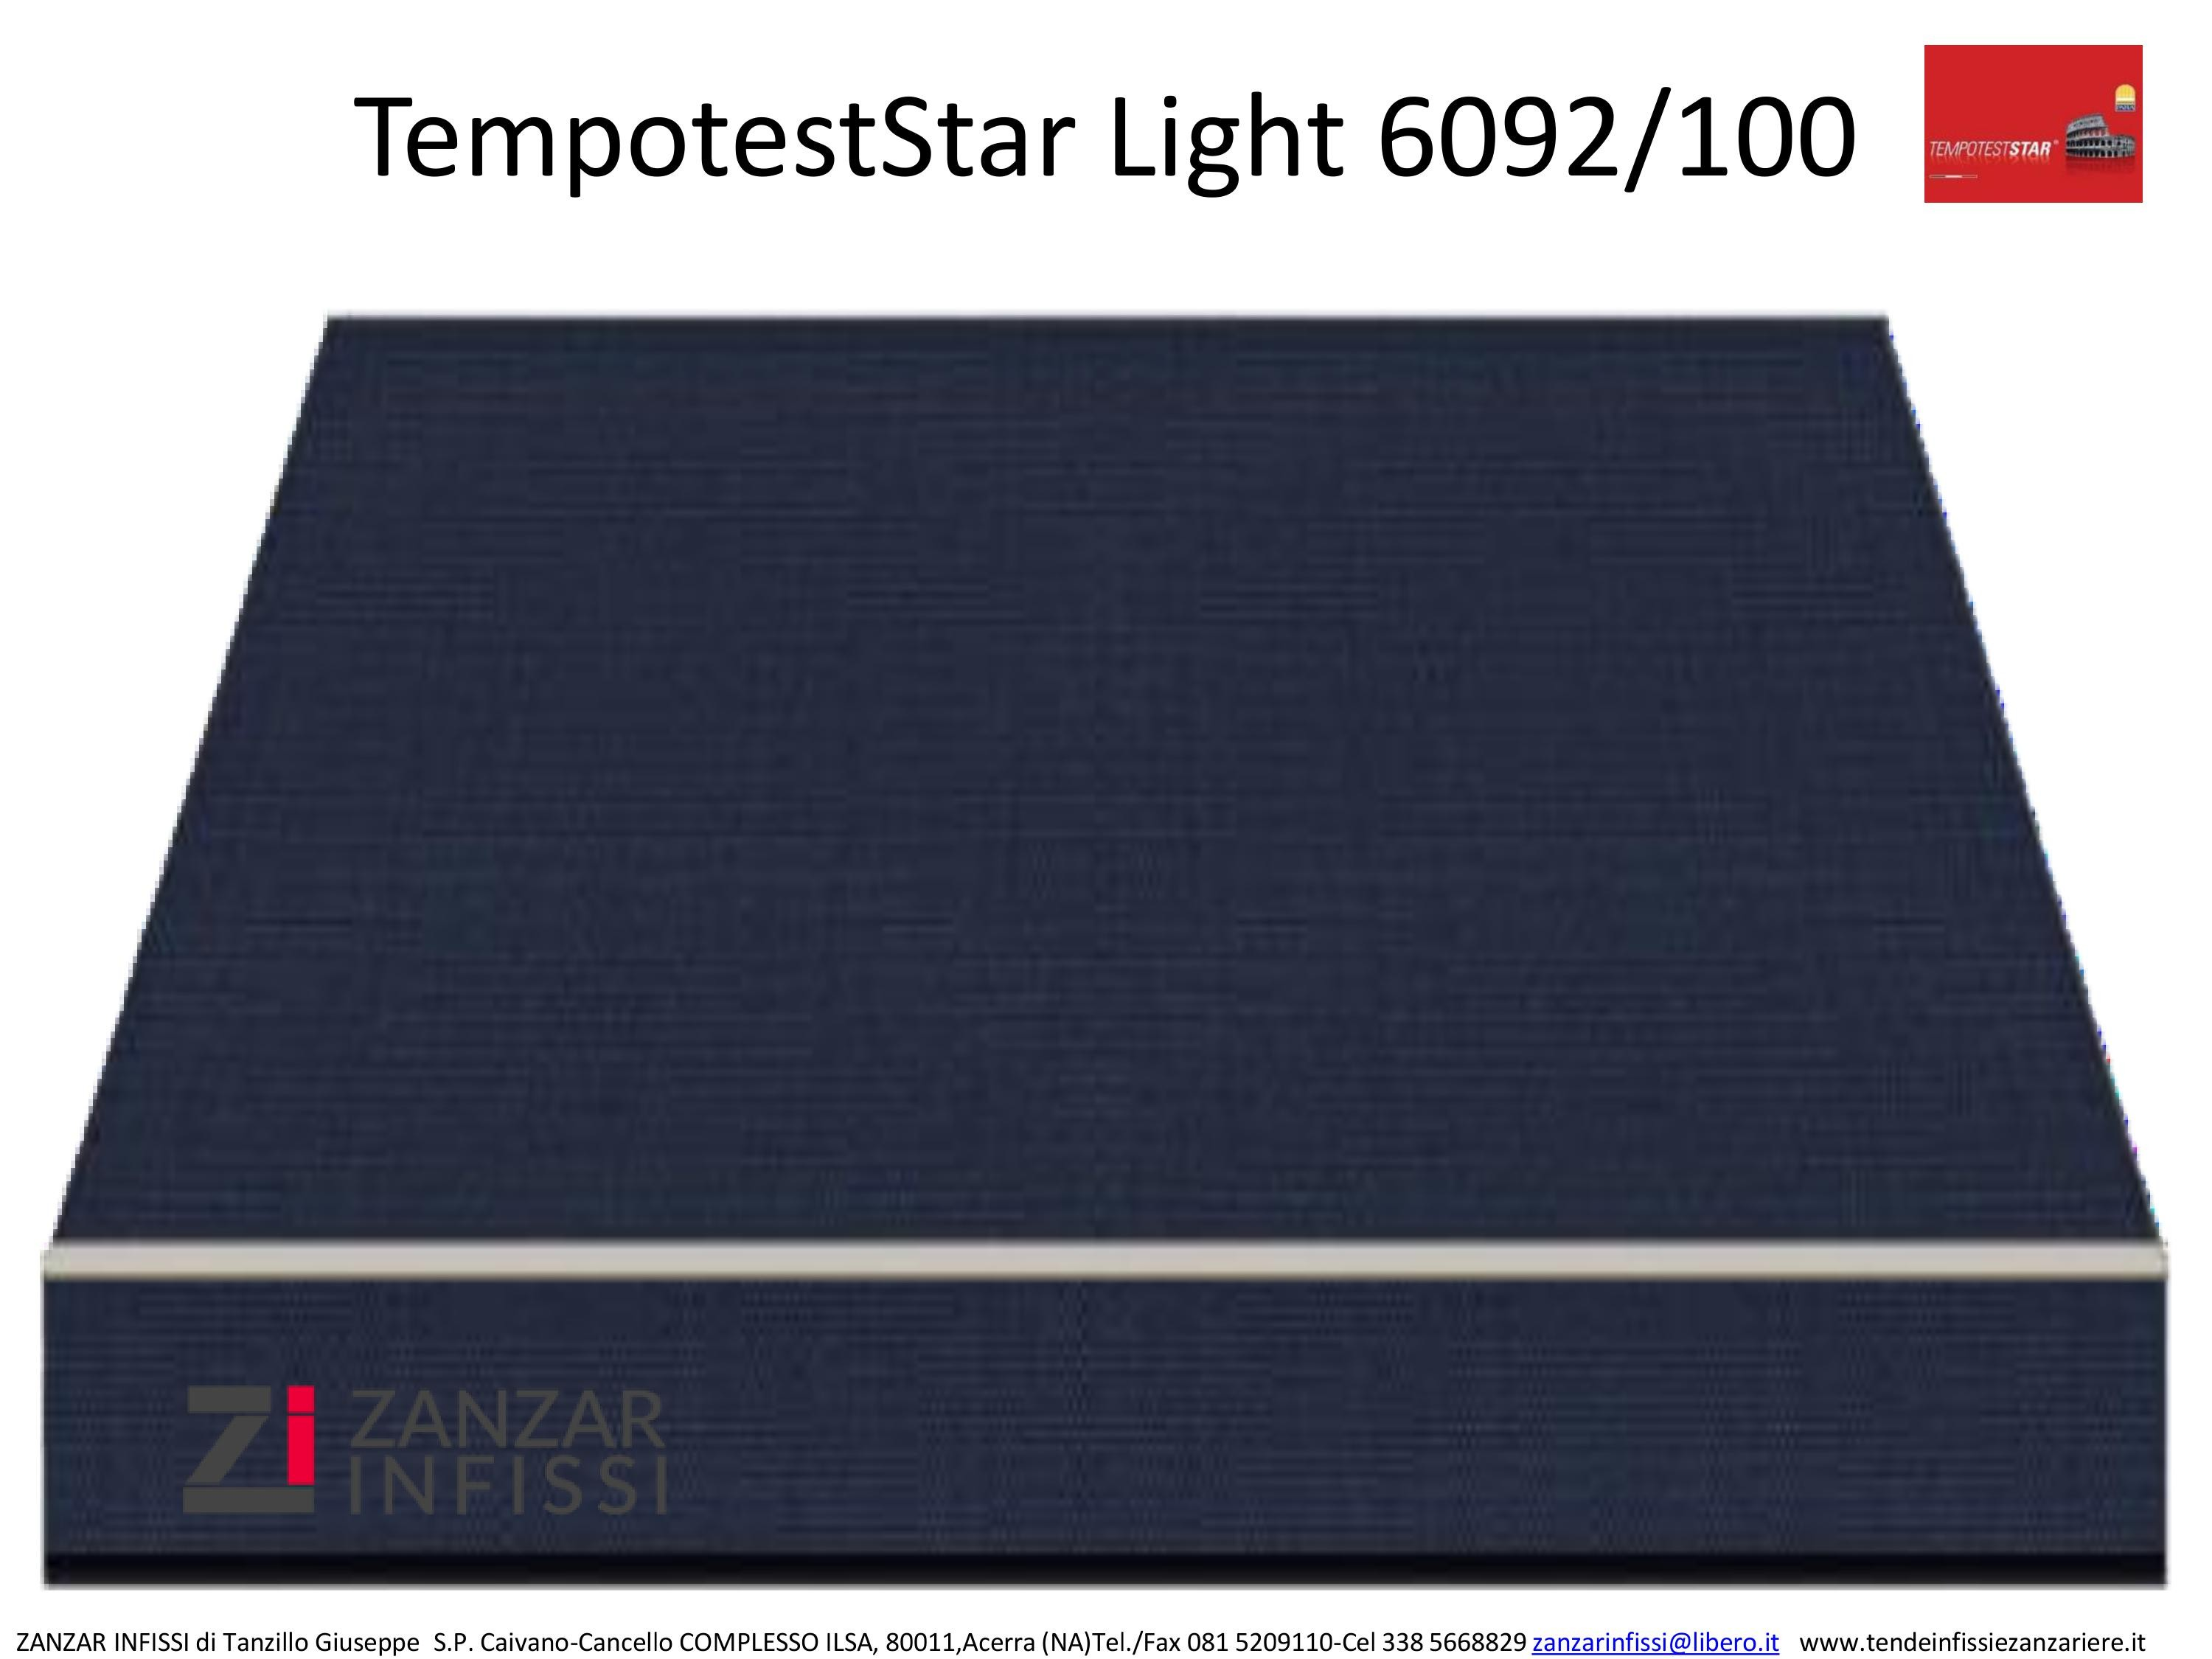 Tempotest star light 6092/100